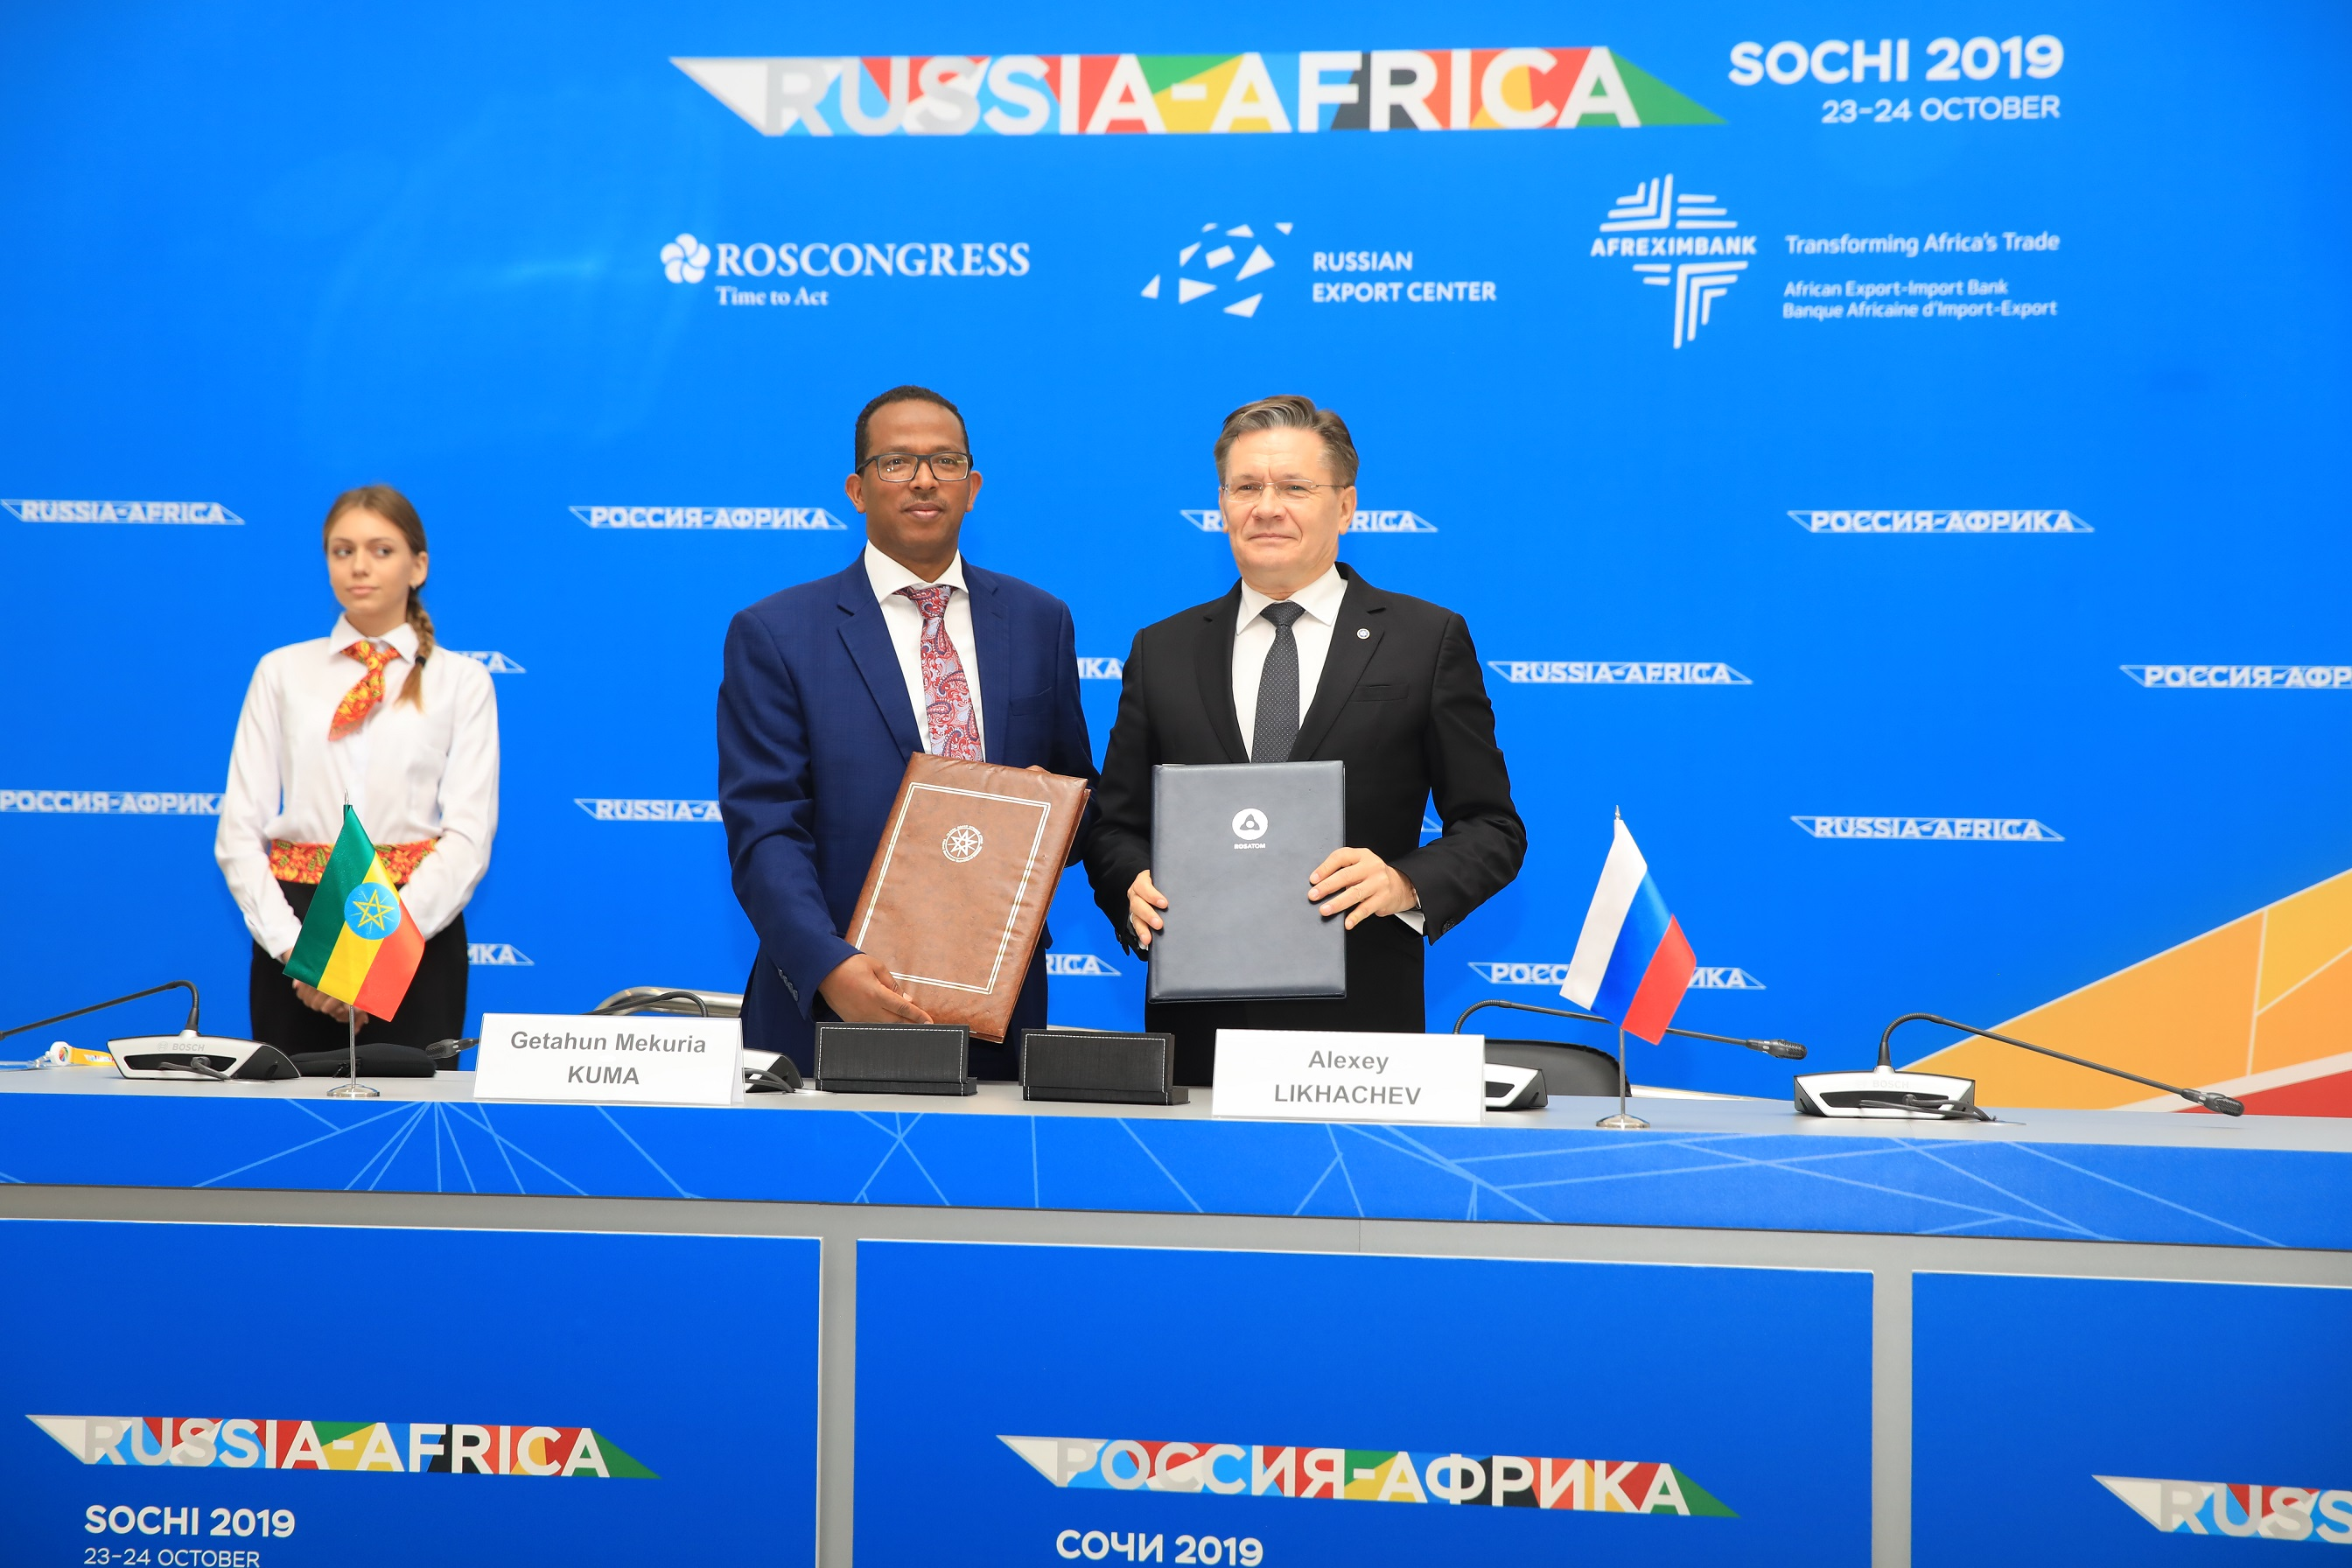 Russia and Ethiopia sign an Intergovernmental agreement on cooperation in the peaceful use of atomic energy